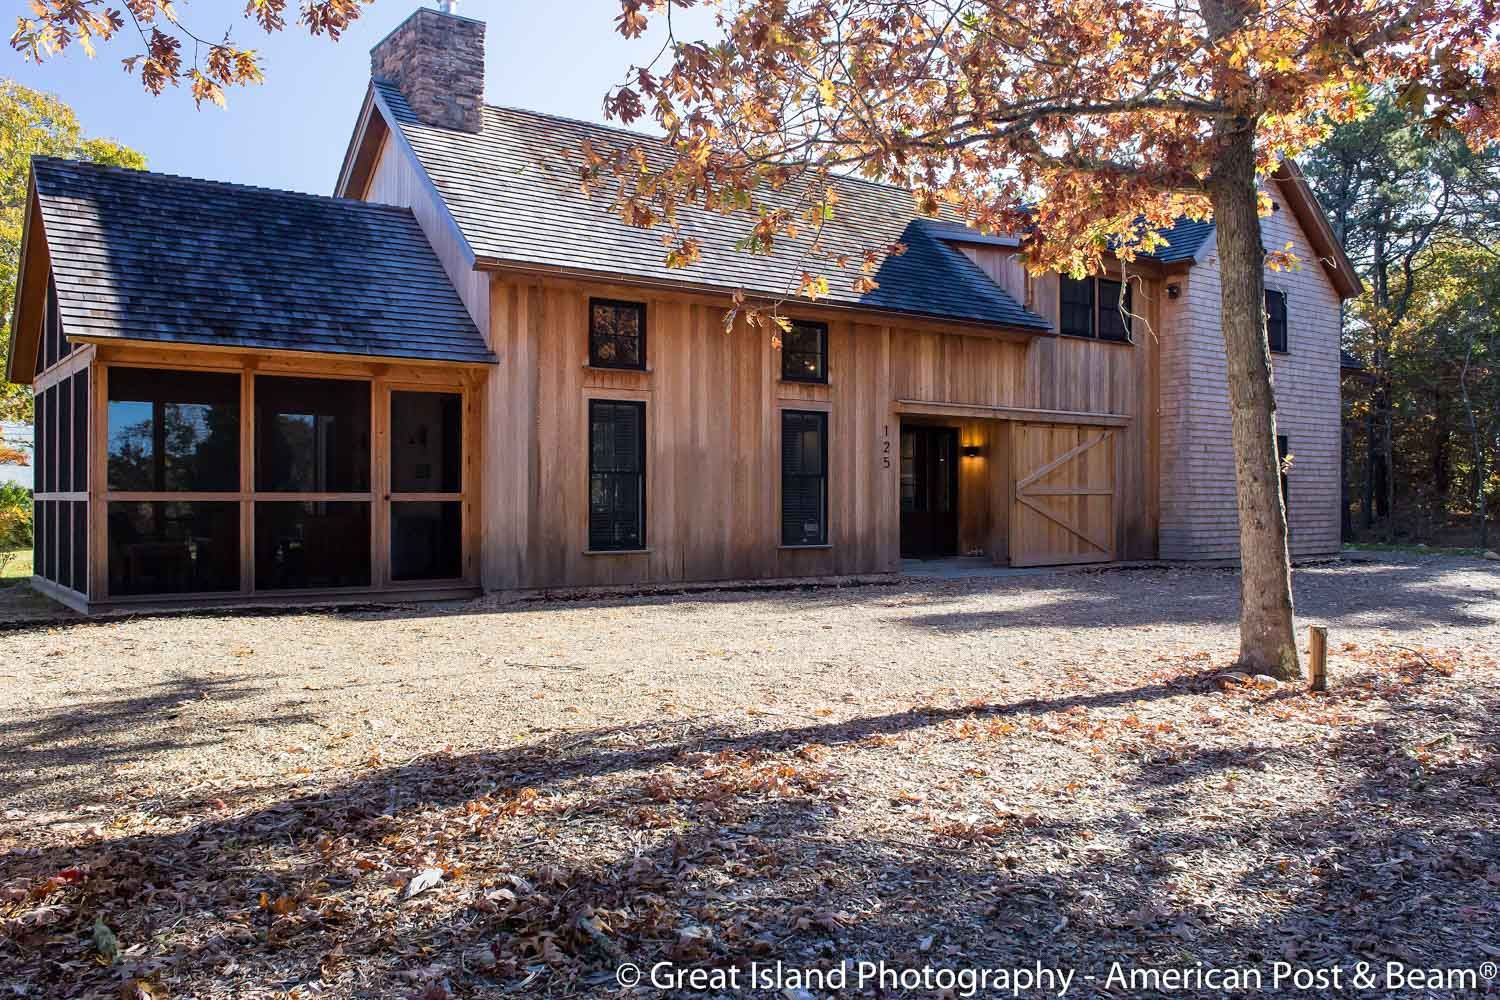 Post And Beam Farmhouse And Barn Style Home Photos American Post Beam Barn Style House House Plans Farmhouse Barn Style House Plans